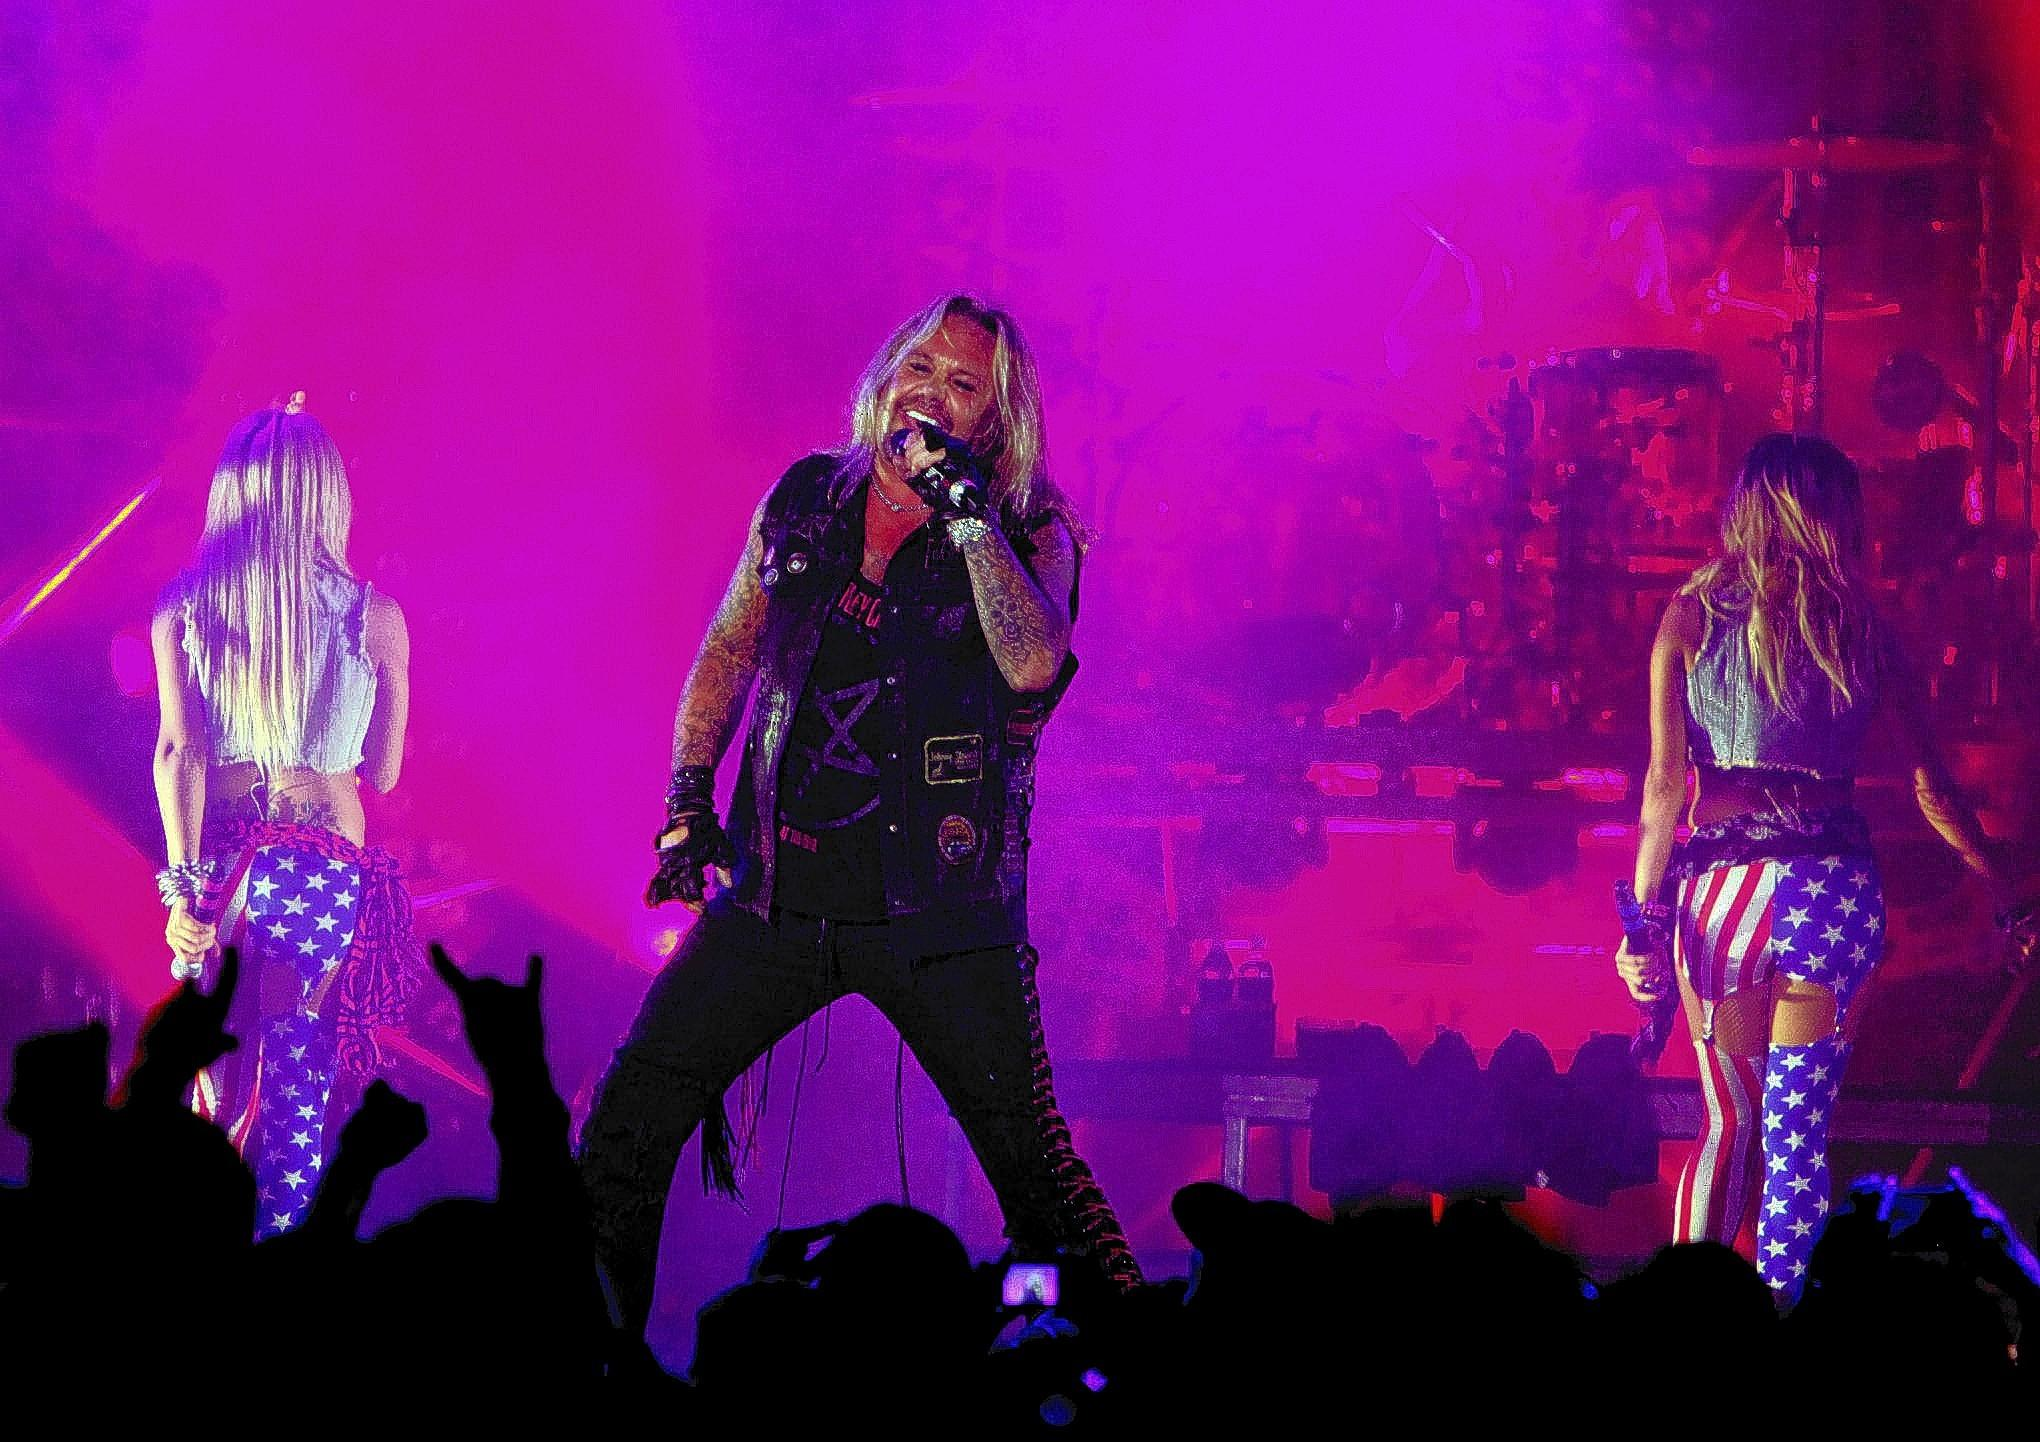 Vince Neil of Motley Crue performs at the Sands Bethlehem Event Center on May 20, 2013.